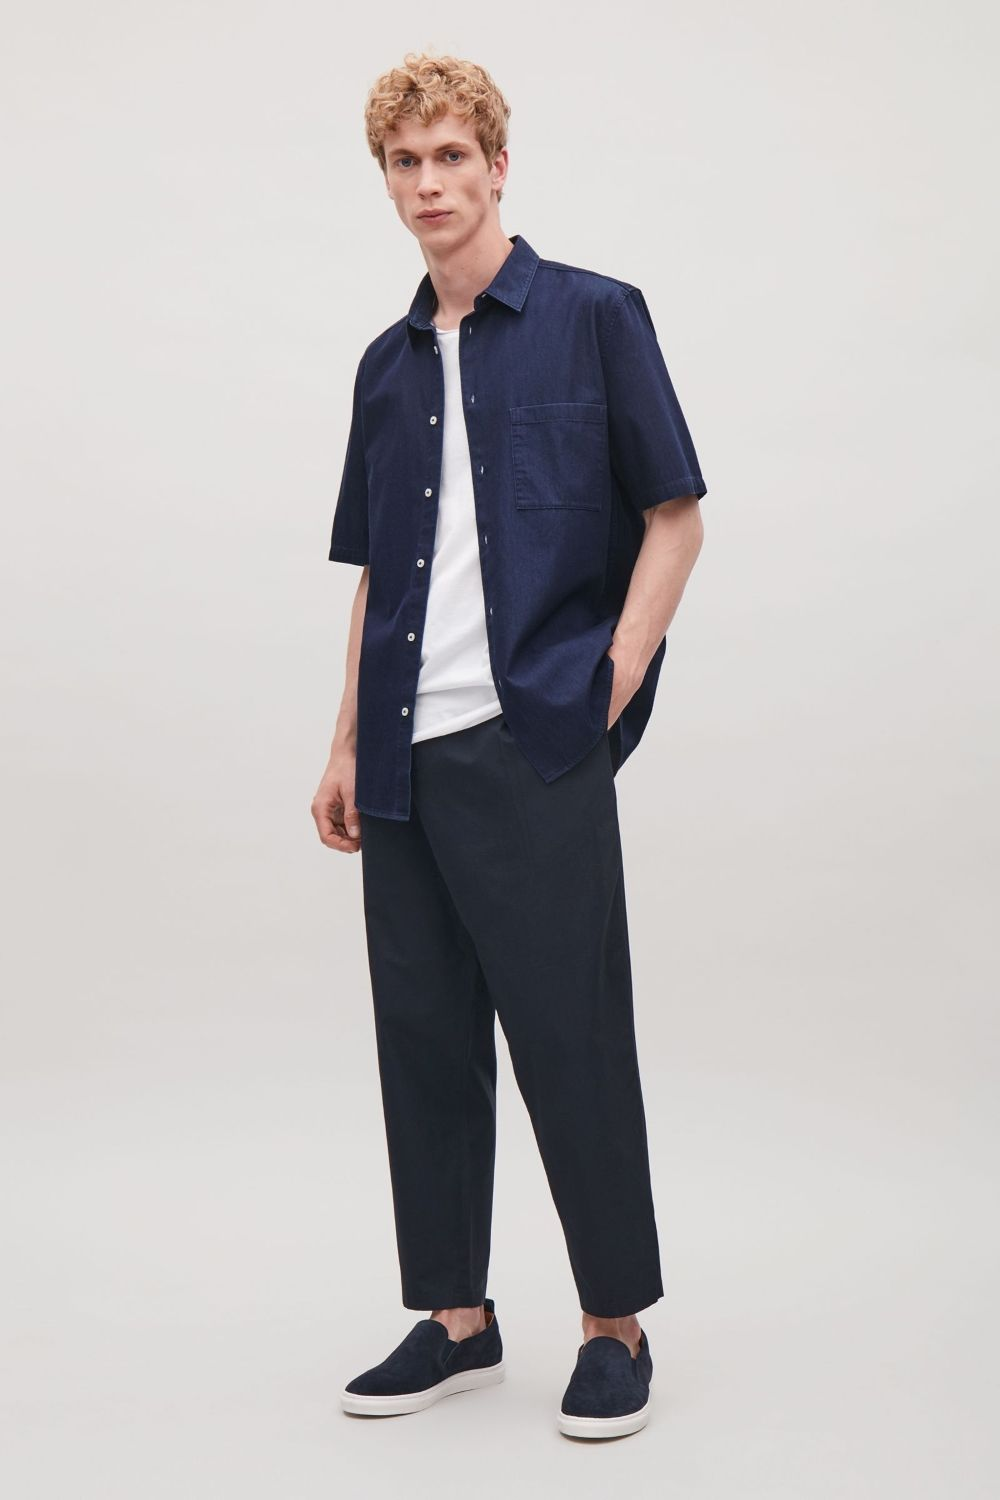 This casual shirt is made from a dark washed denim with a pointed